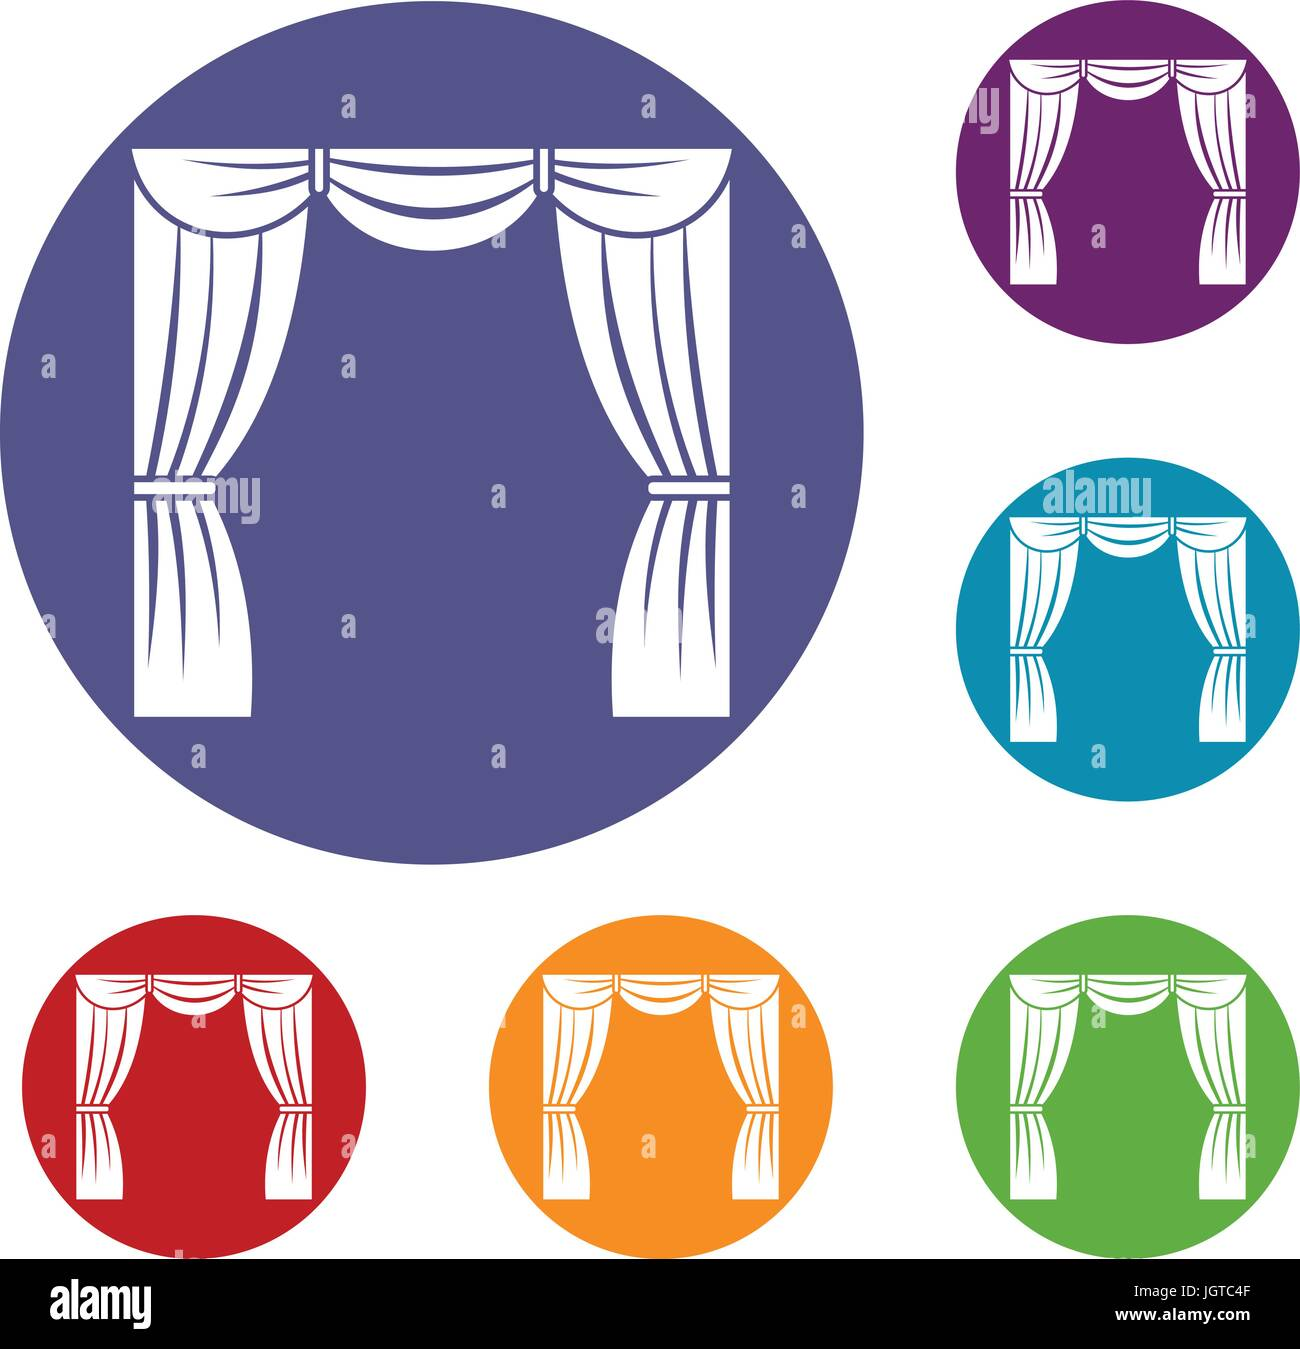 Curtain on stage icons set - Stock Vector